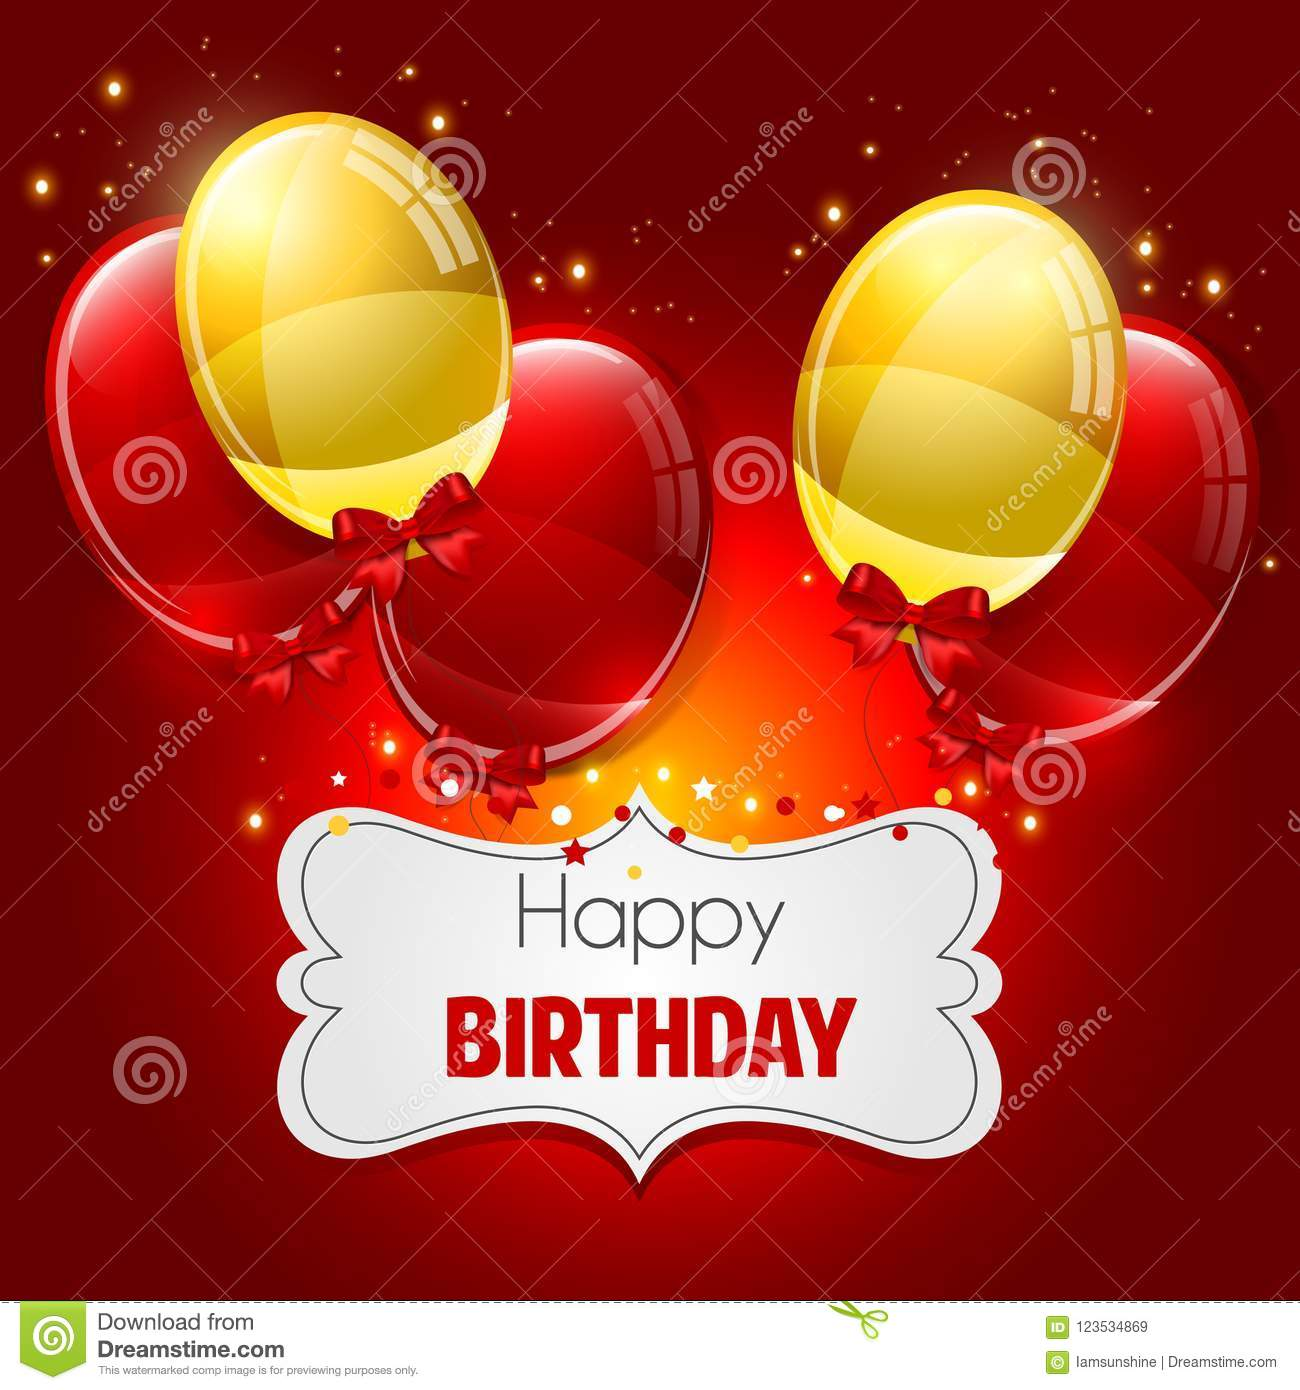 Happy Birthday Greeting Card With Balloons